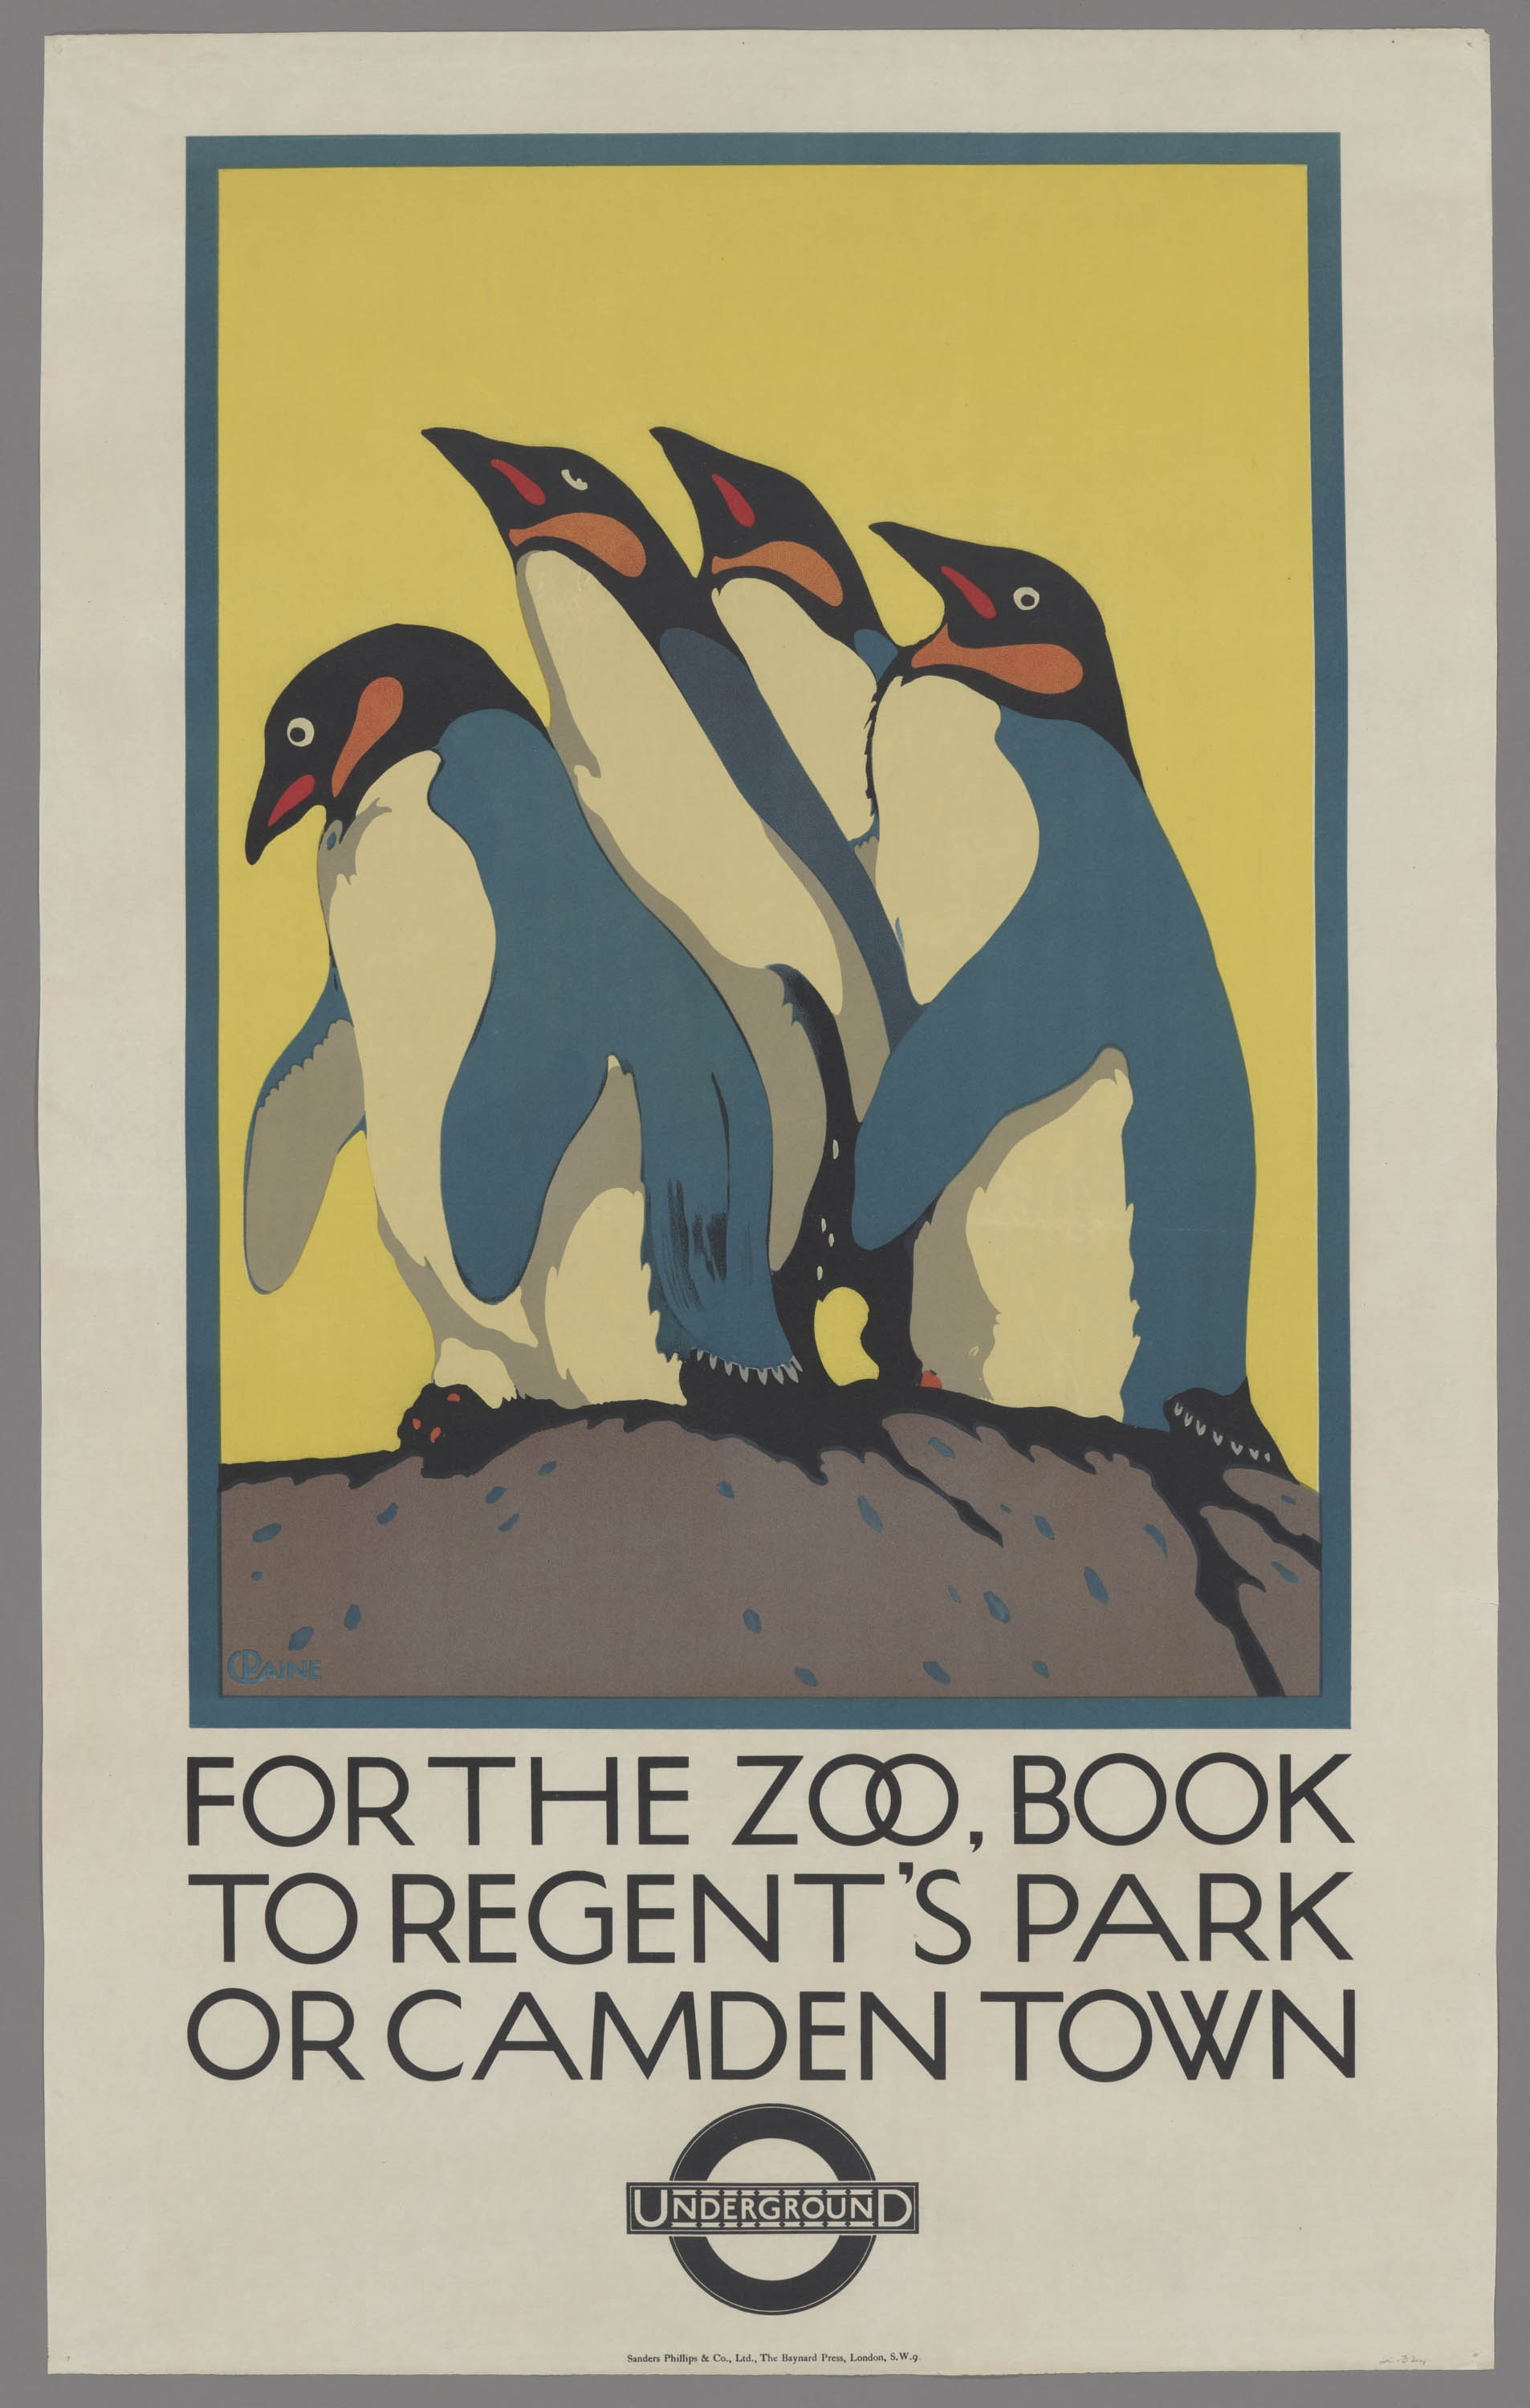 A poster made for the London Underground depicting 4 penguins on a yellow background.